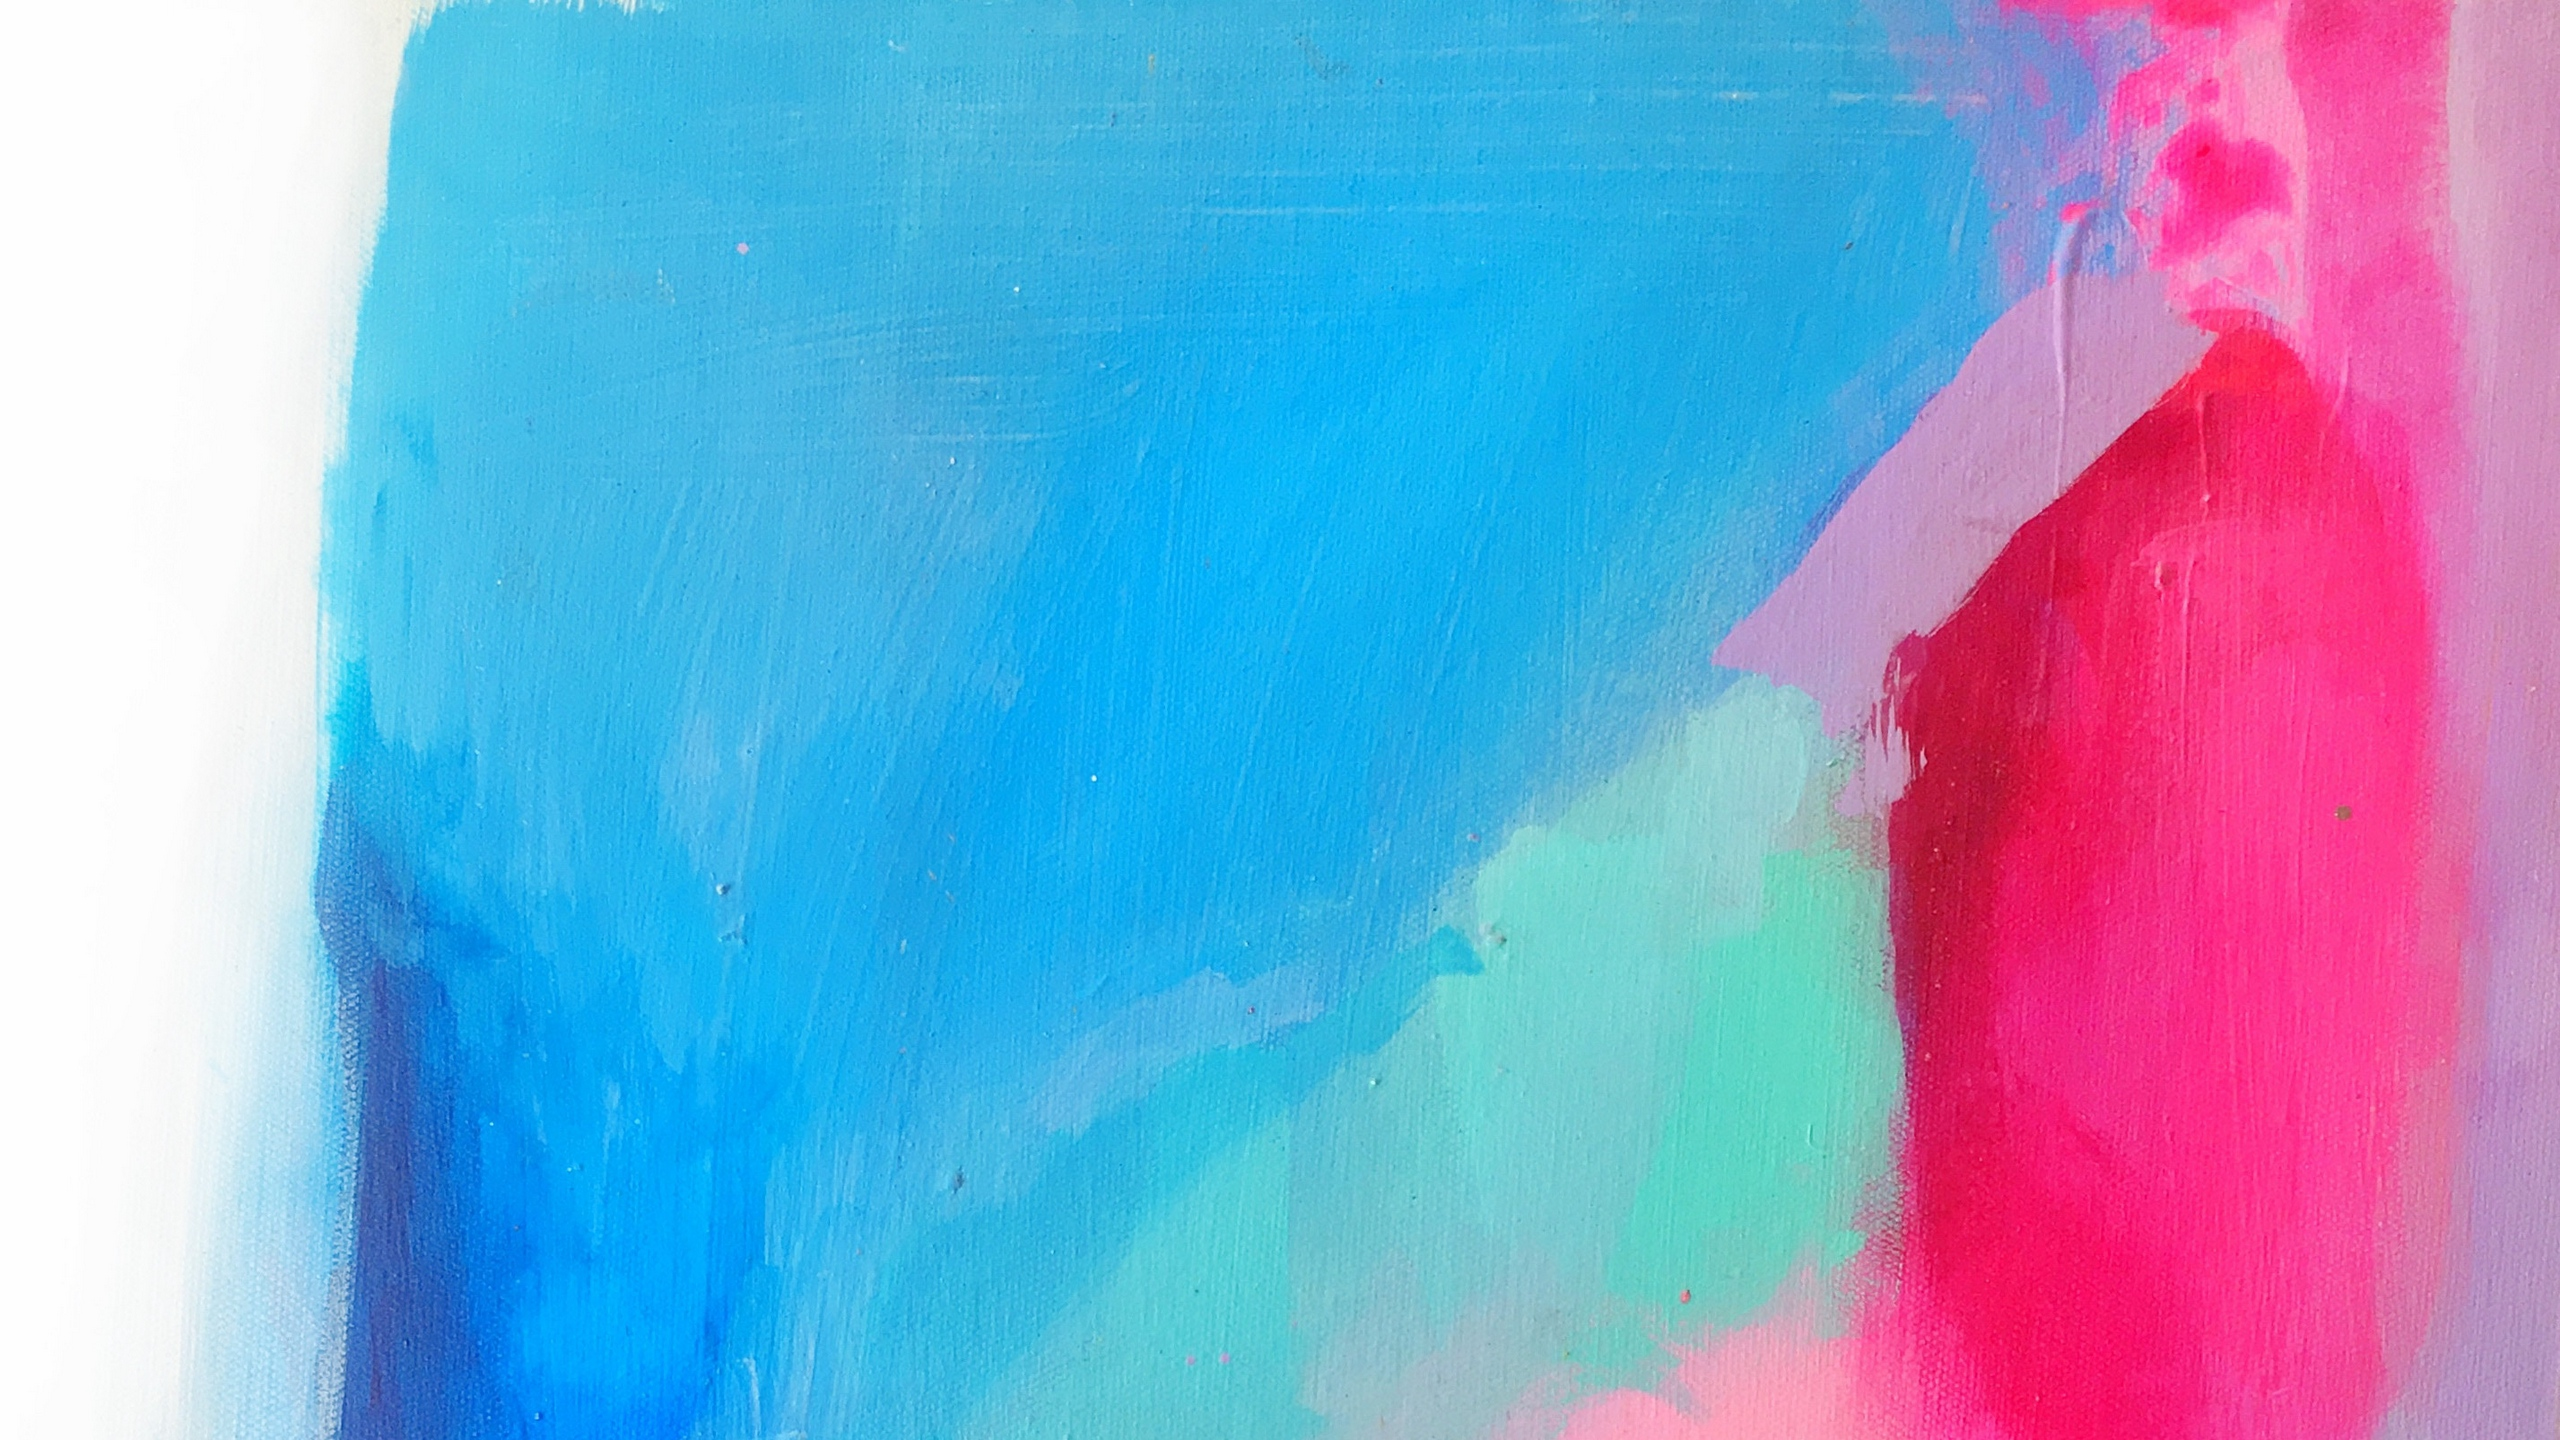 Wallpaper Canvas, Paint, Strokes, Colorful, Modern - Painting - HD Wallpaper